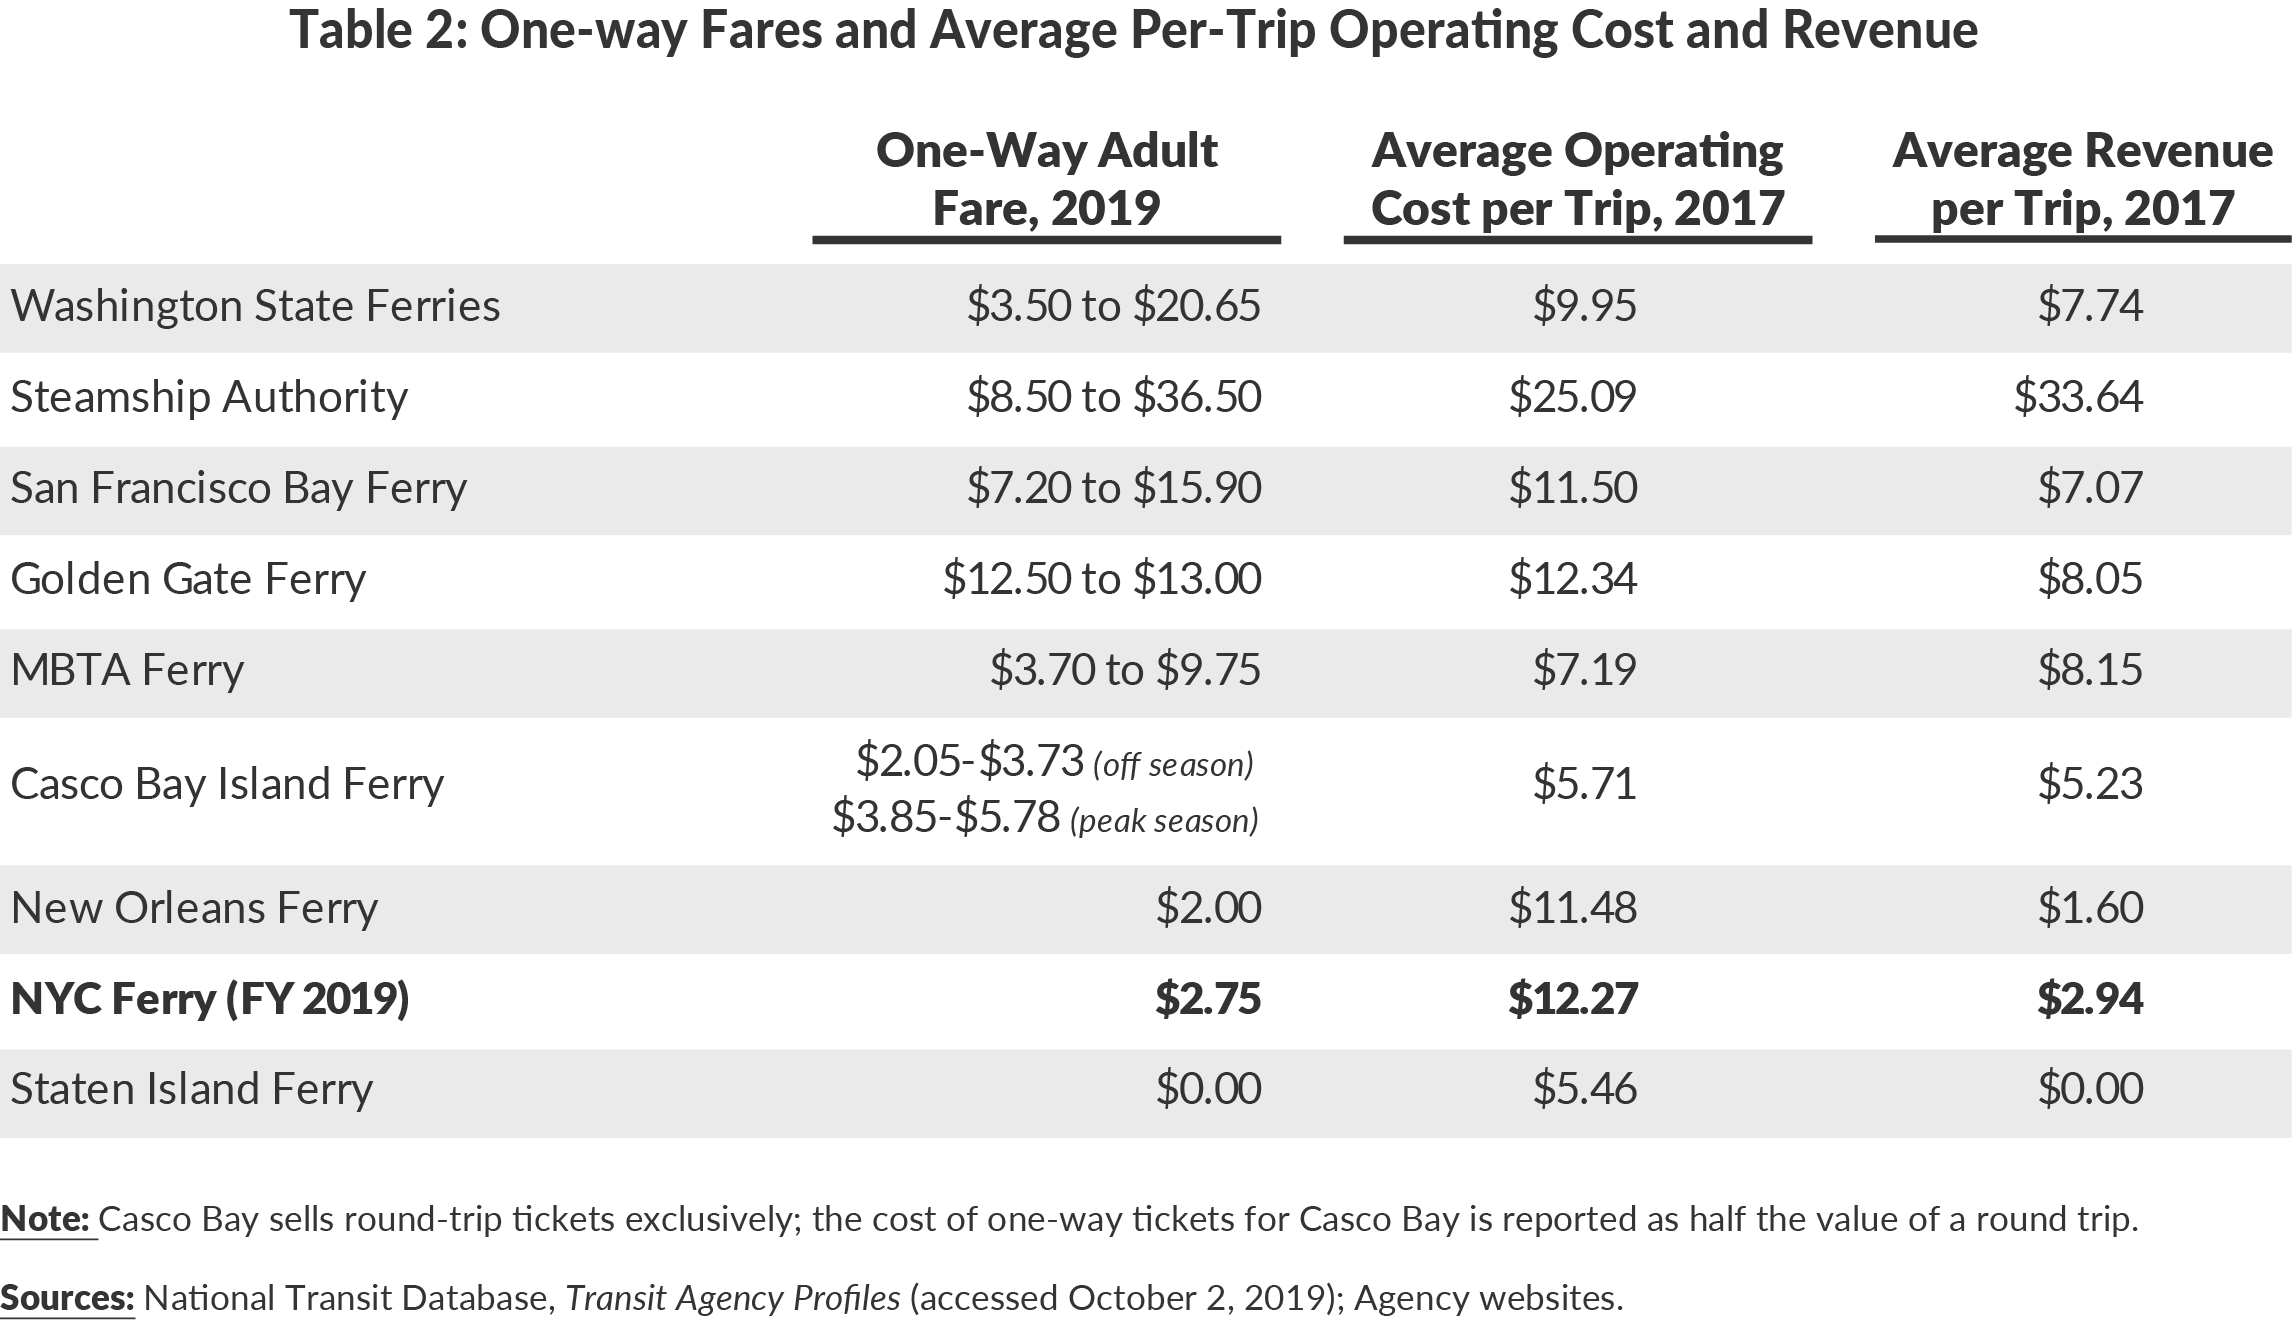 Table 2. One-way Fares and Average Per-Trip Operating Cost and Revenue